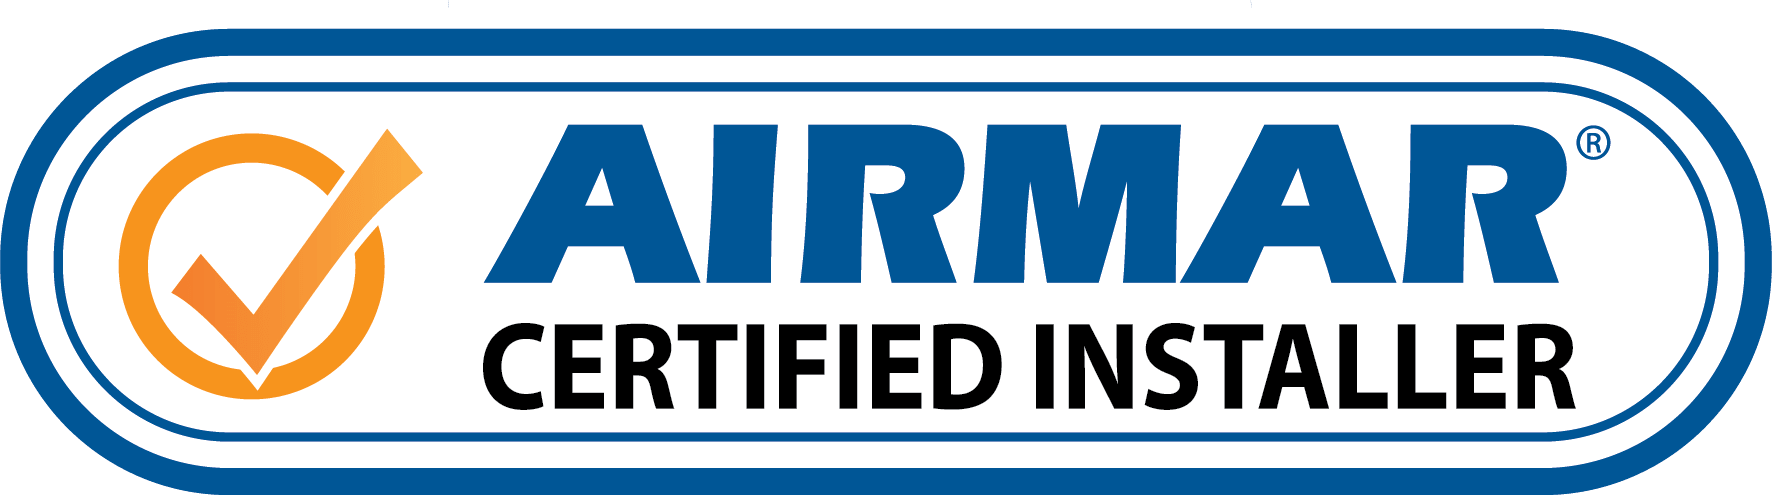 hight resolution of airmar certified installers are your best resource for determining the right transducer for your application as well as ensuring a quality installation